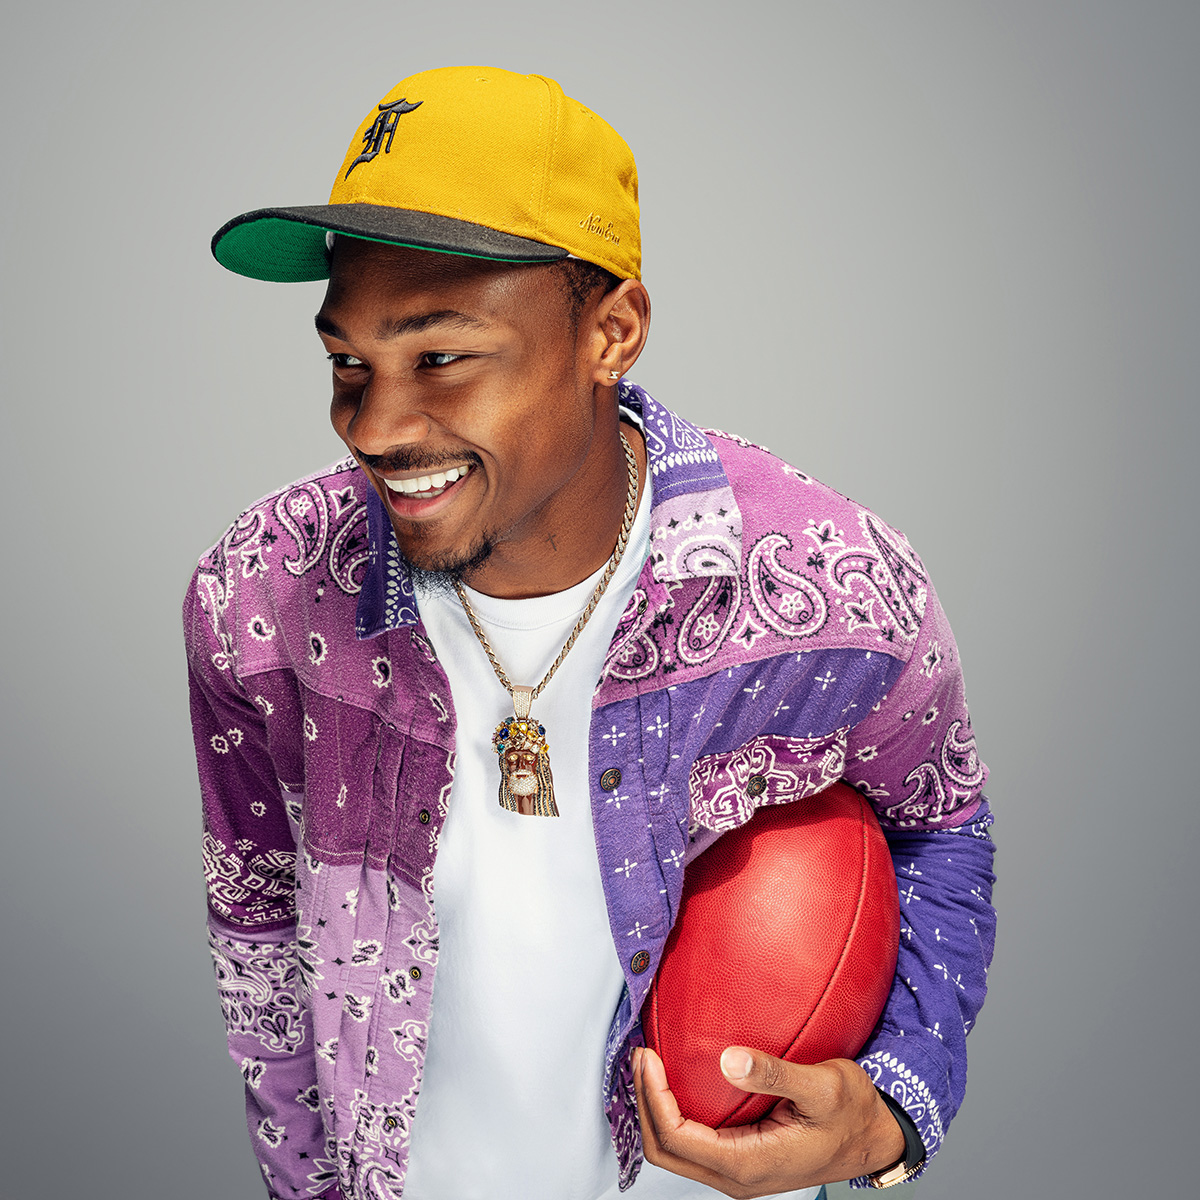 Stefon Diggs holding a football and smiling.